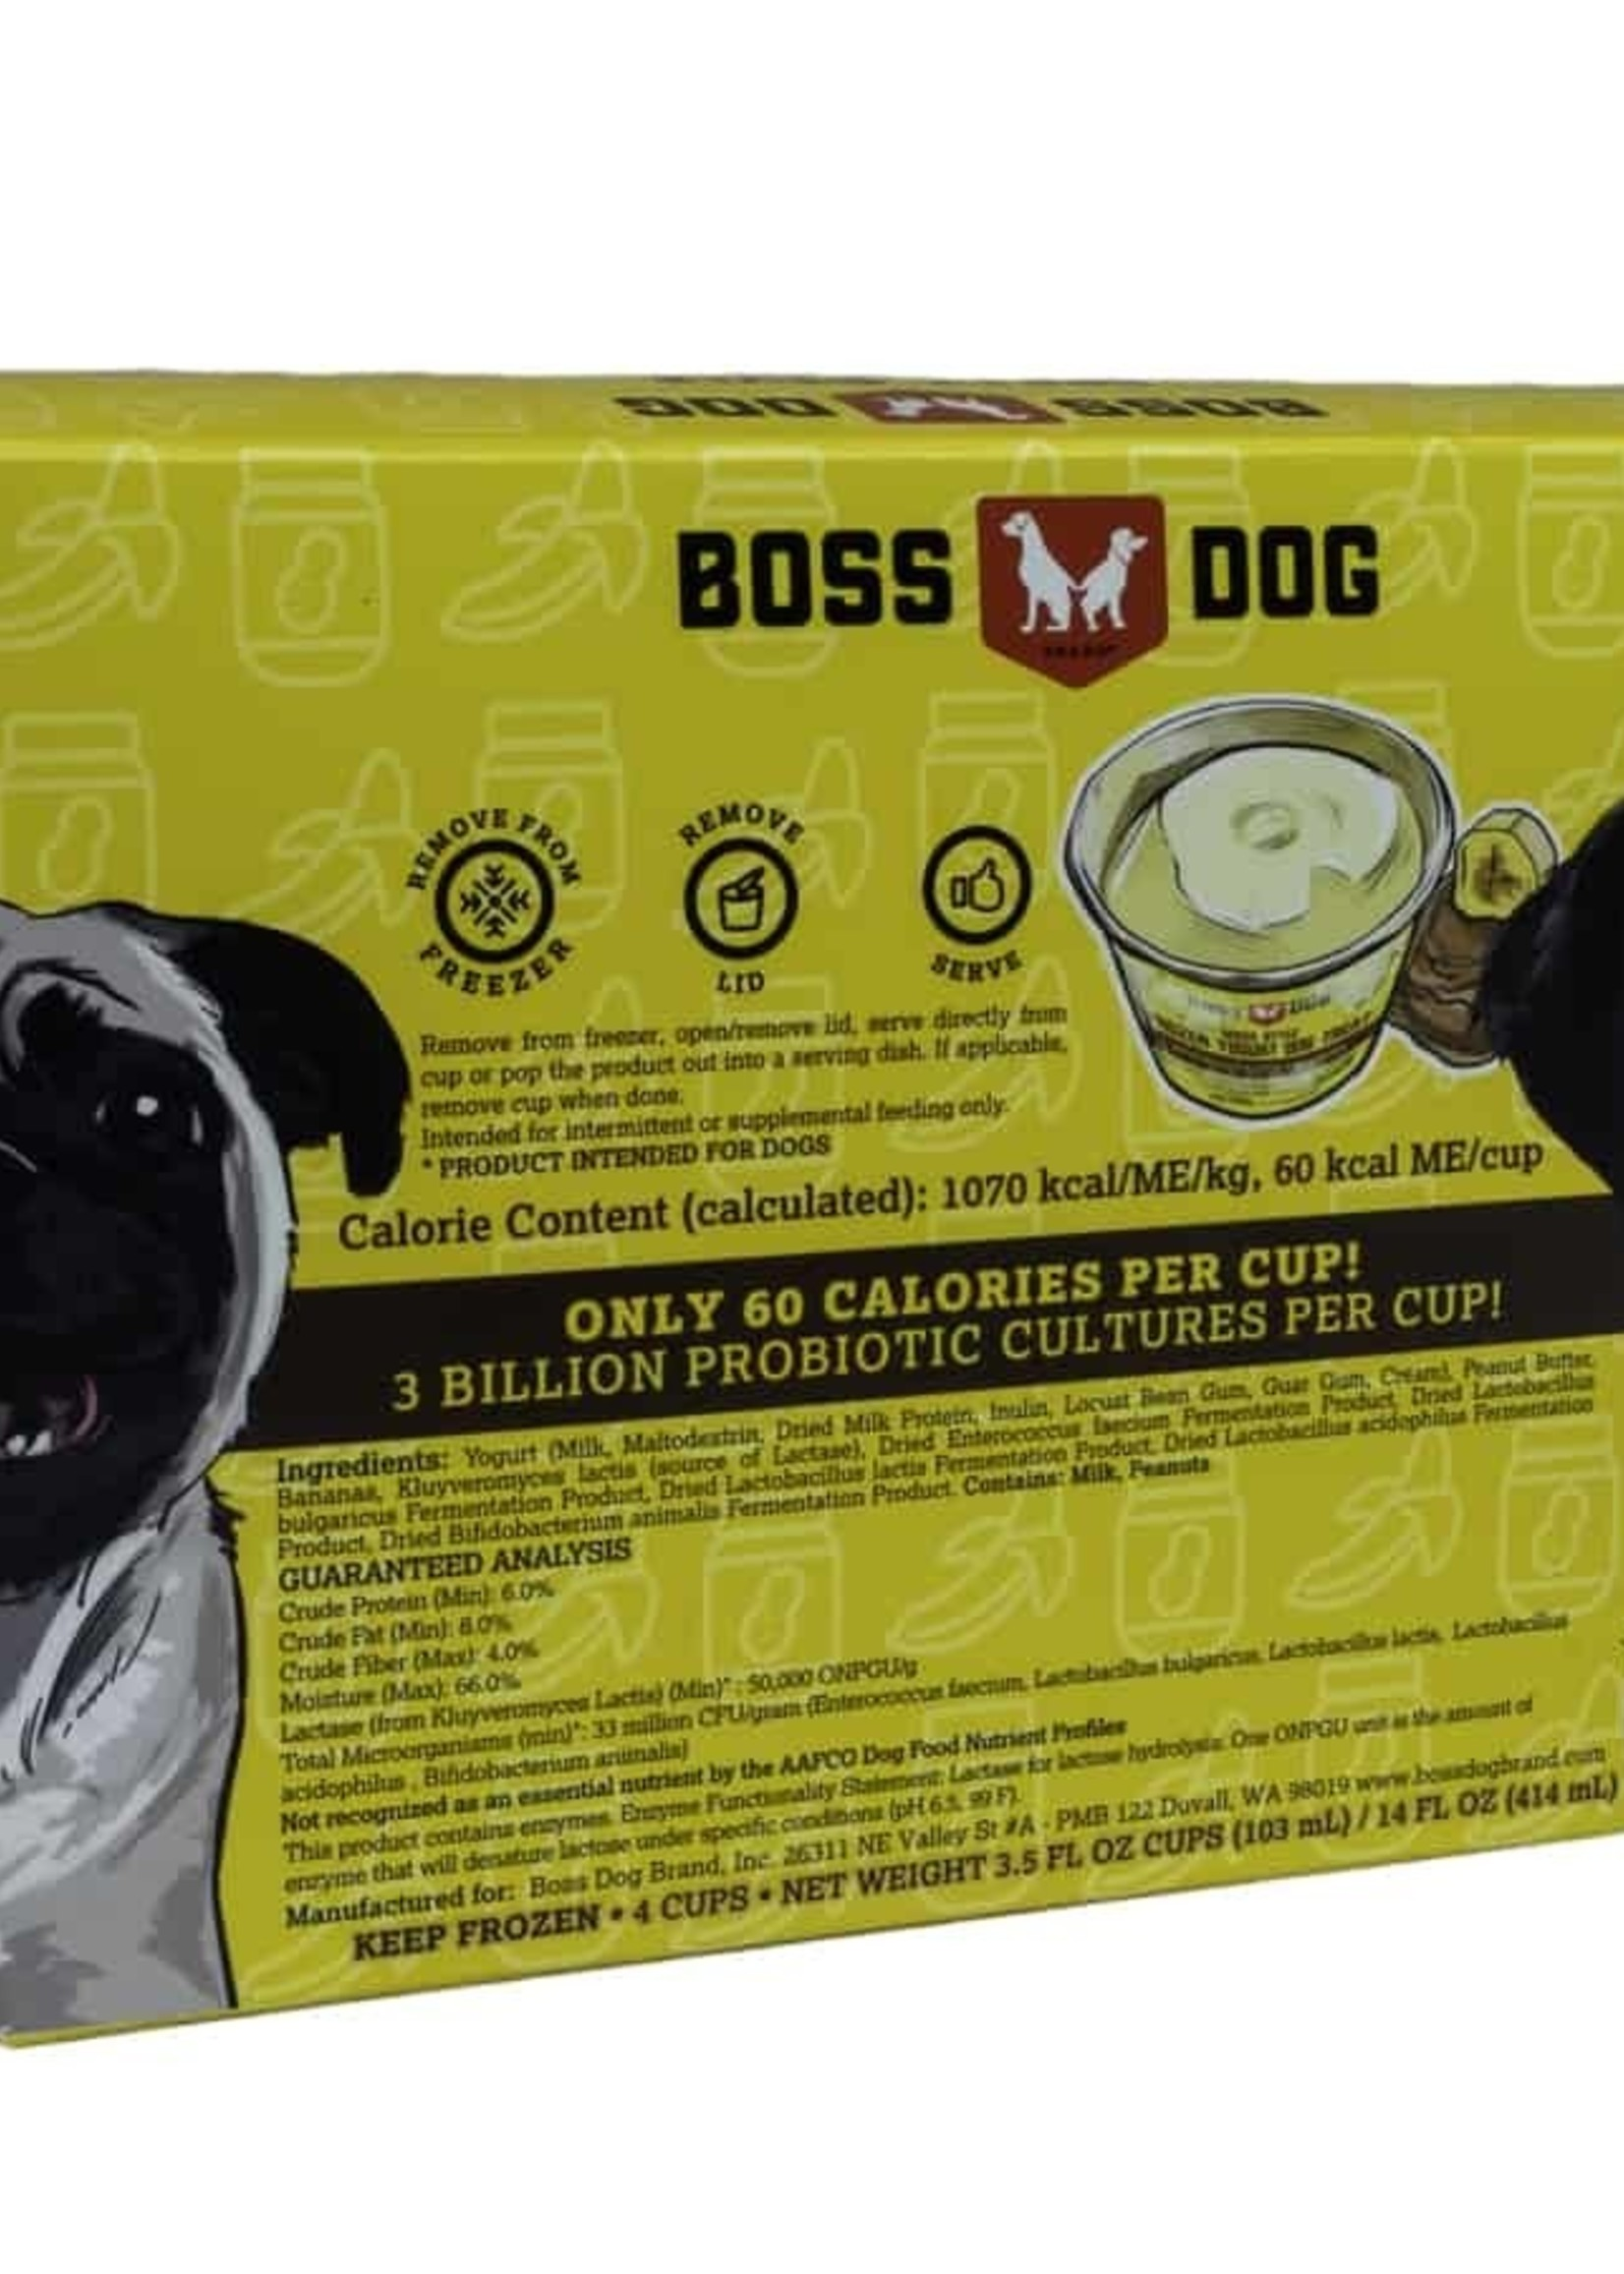 Boss Dog Boss Dog Frozen Yogurt Peanut Butter and Banana